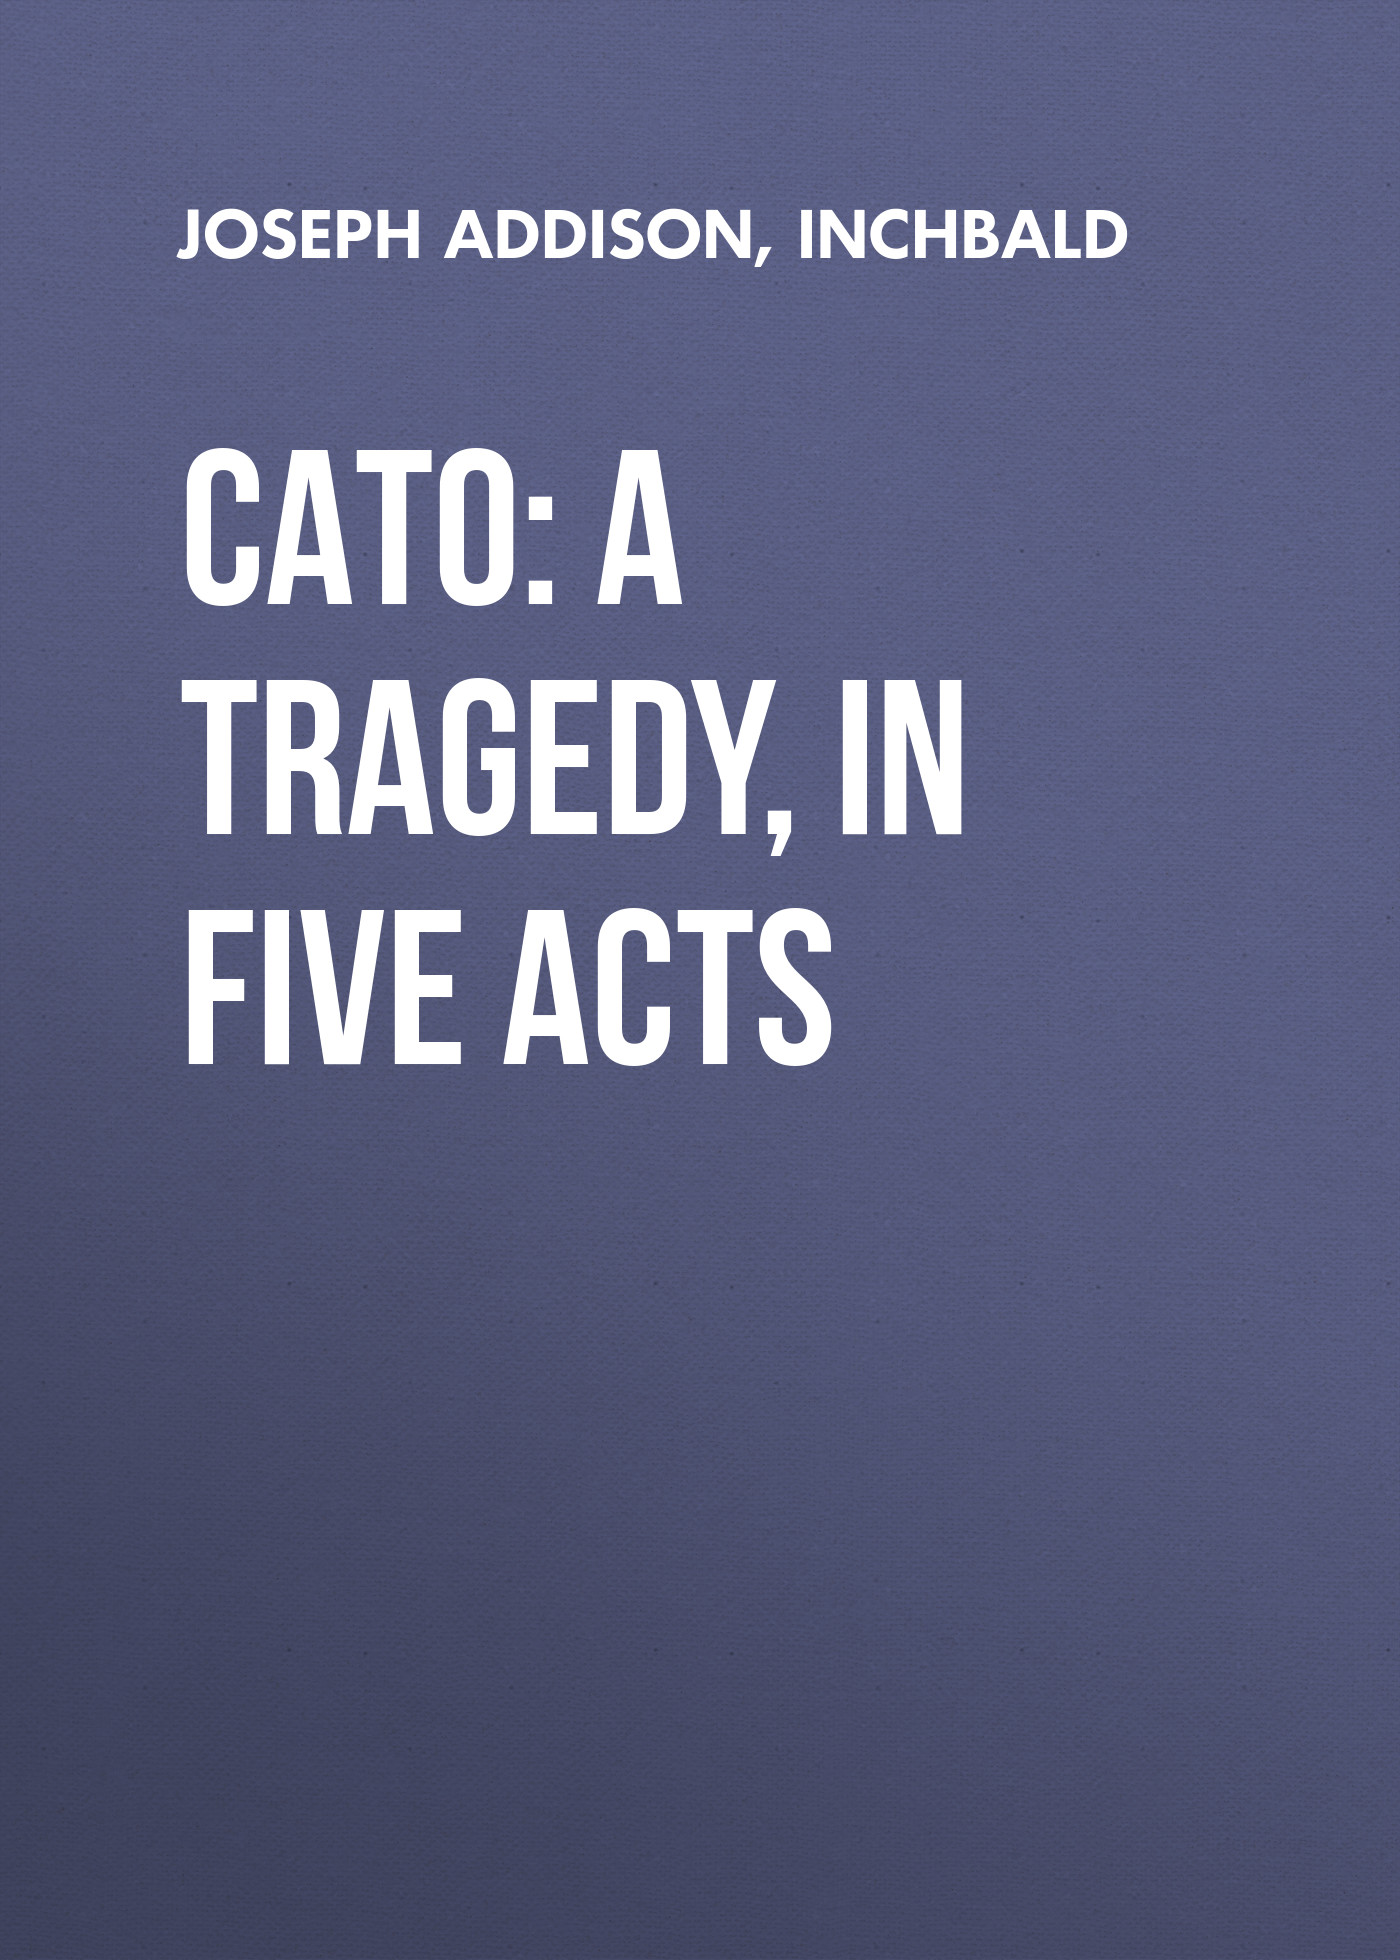 Cato: A Tragedy, in Five Acts